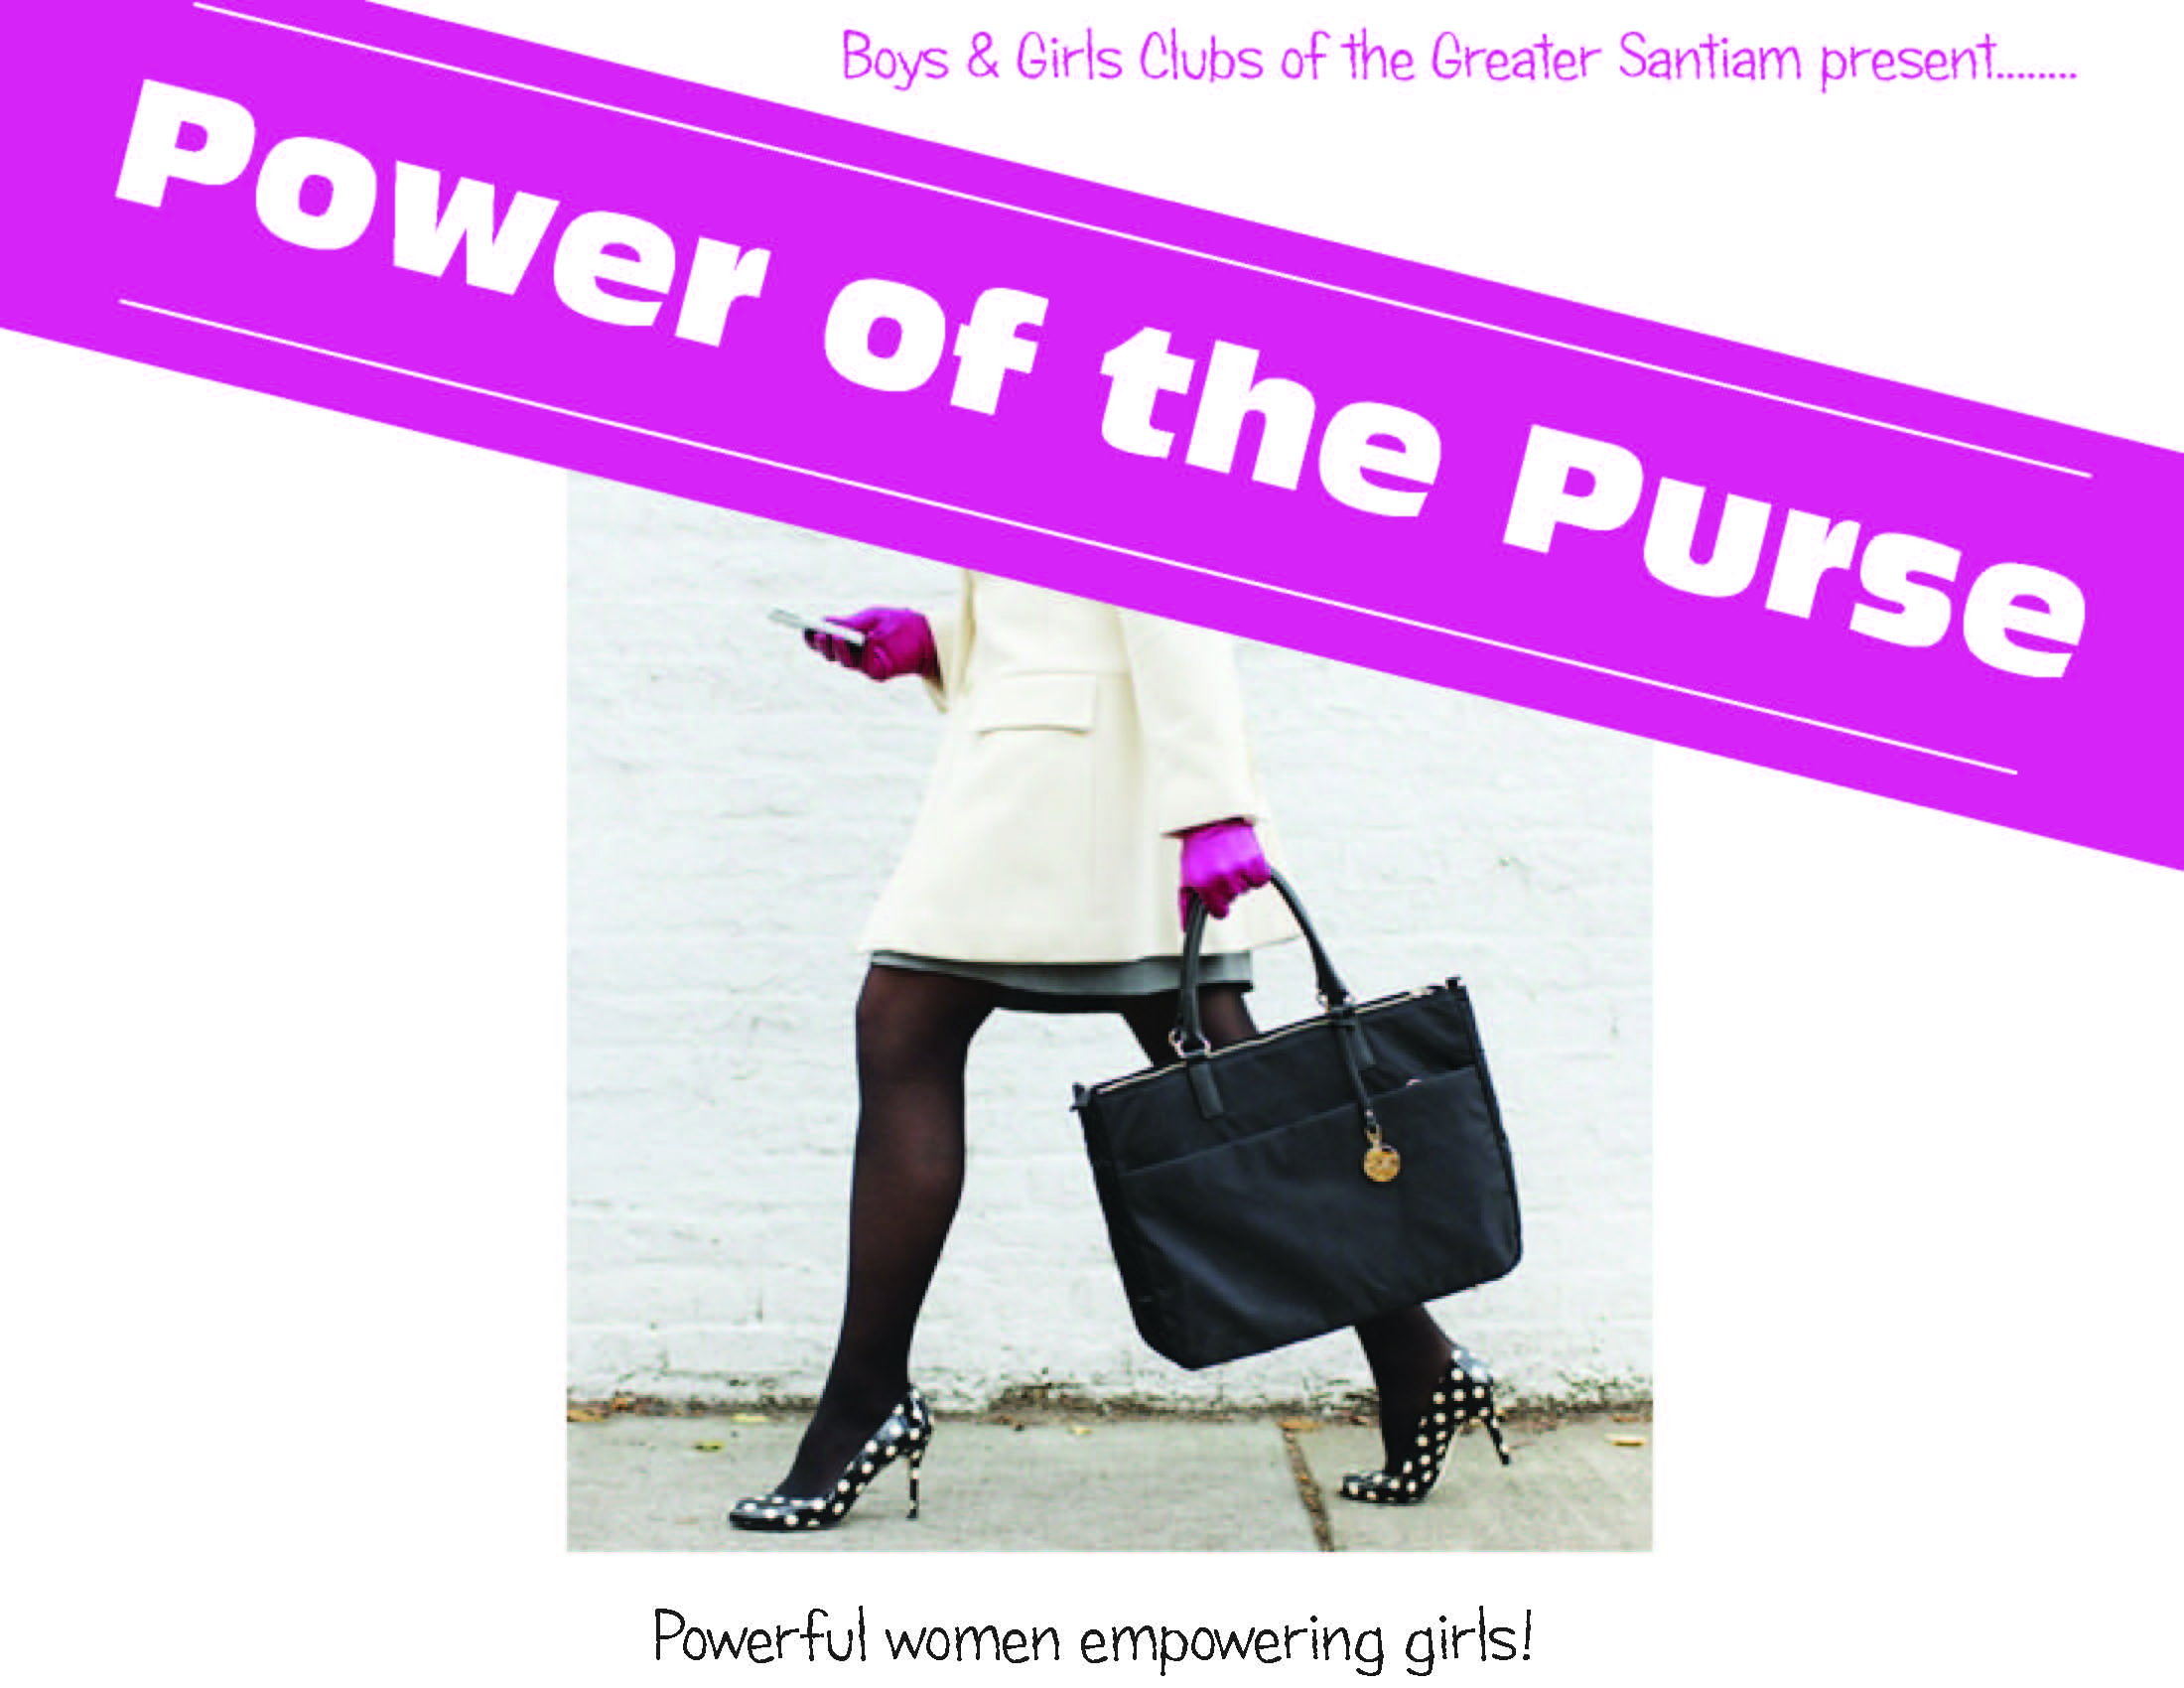 Ladies Night Out - Power of the Purse